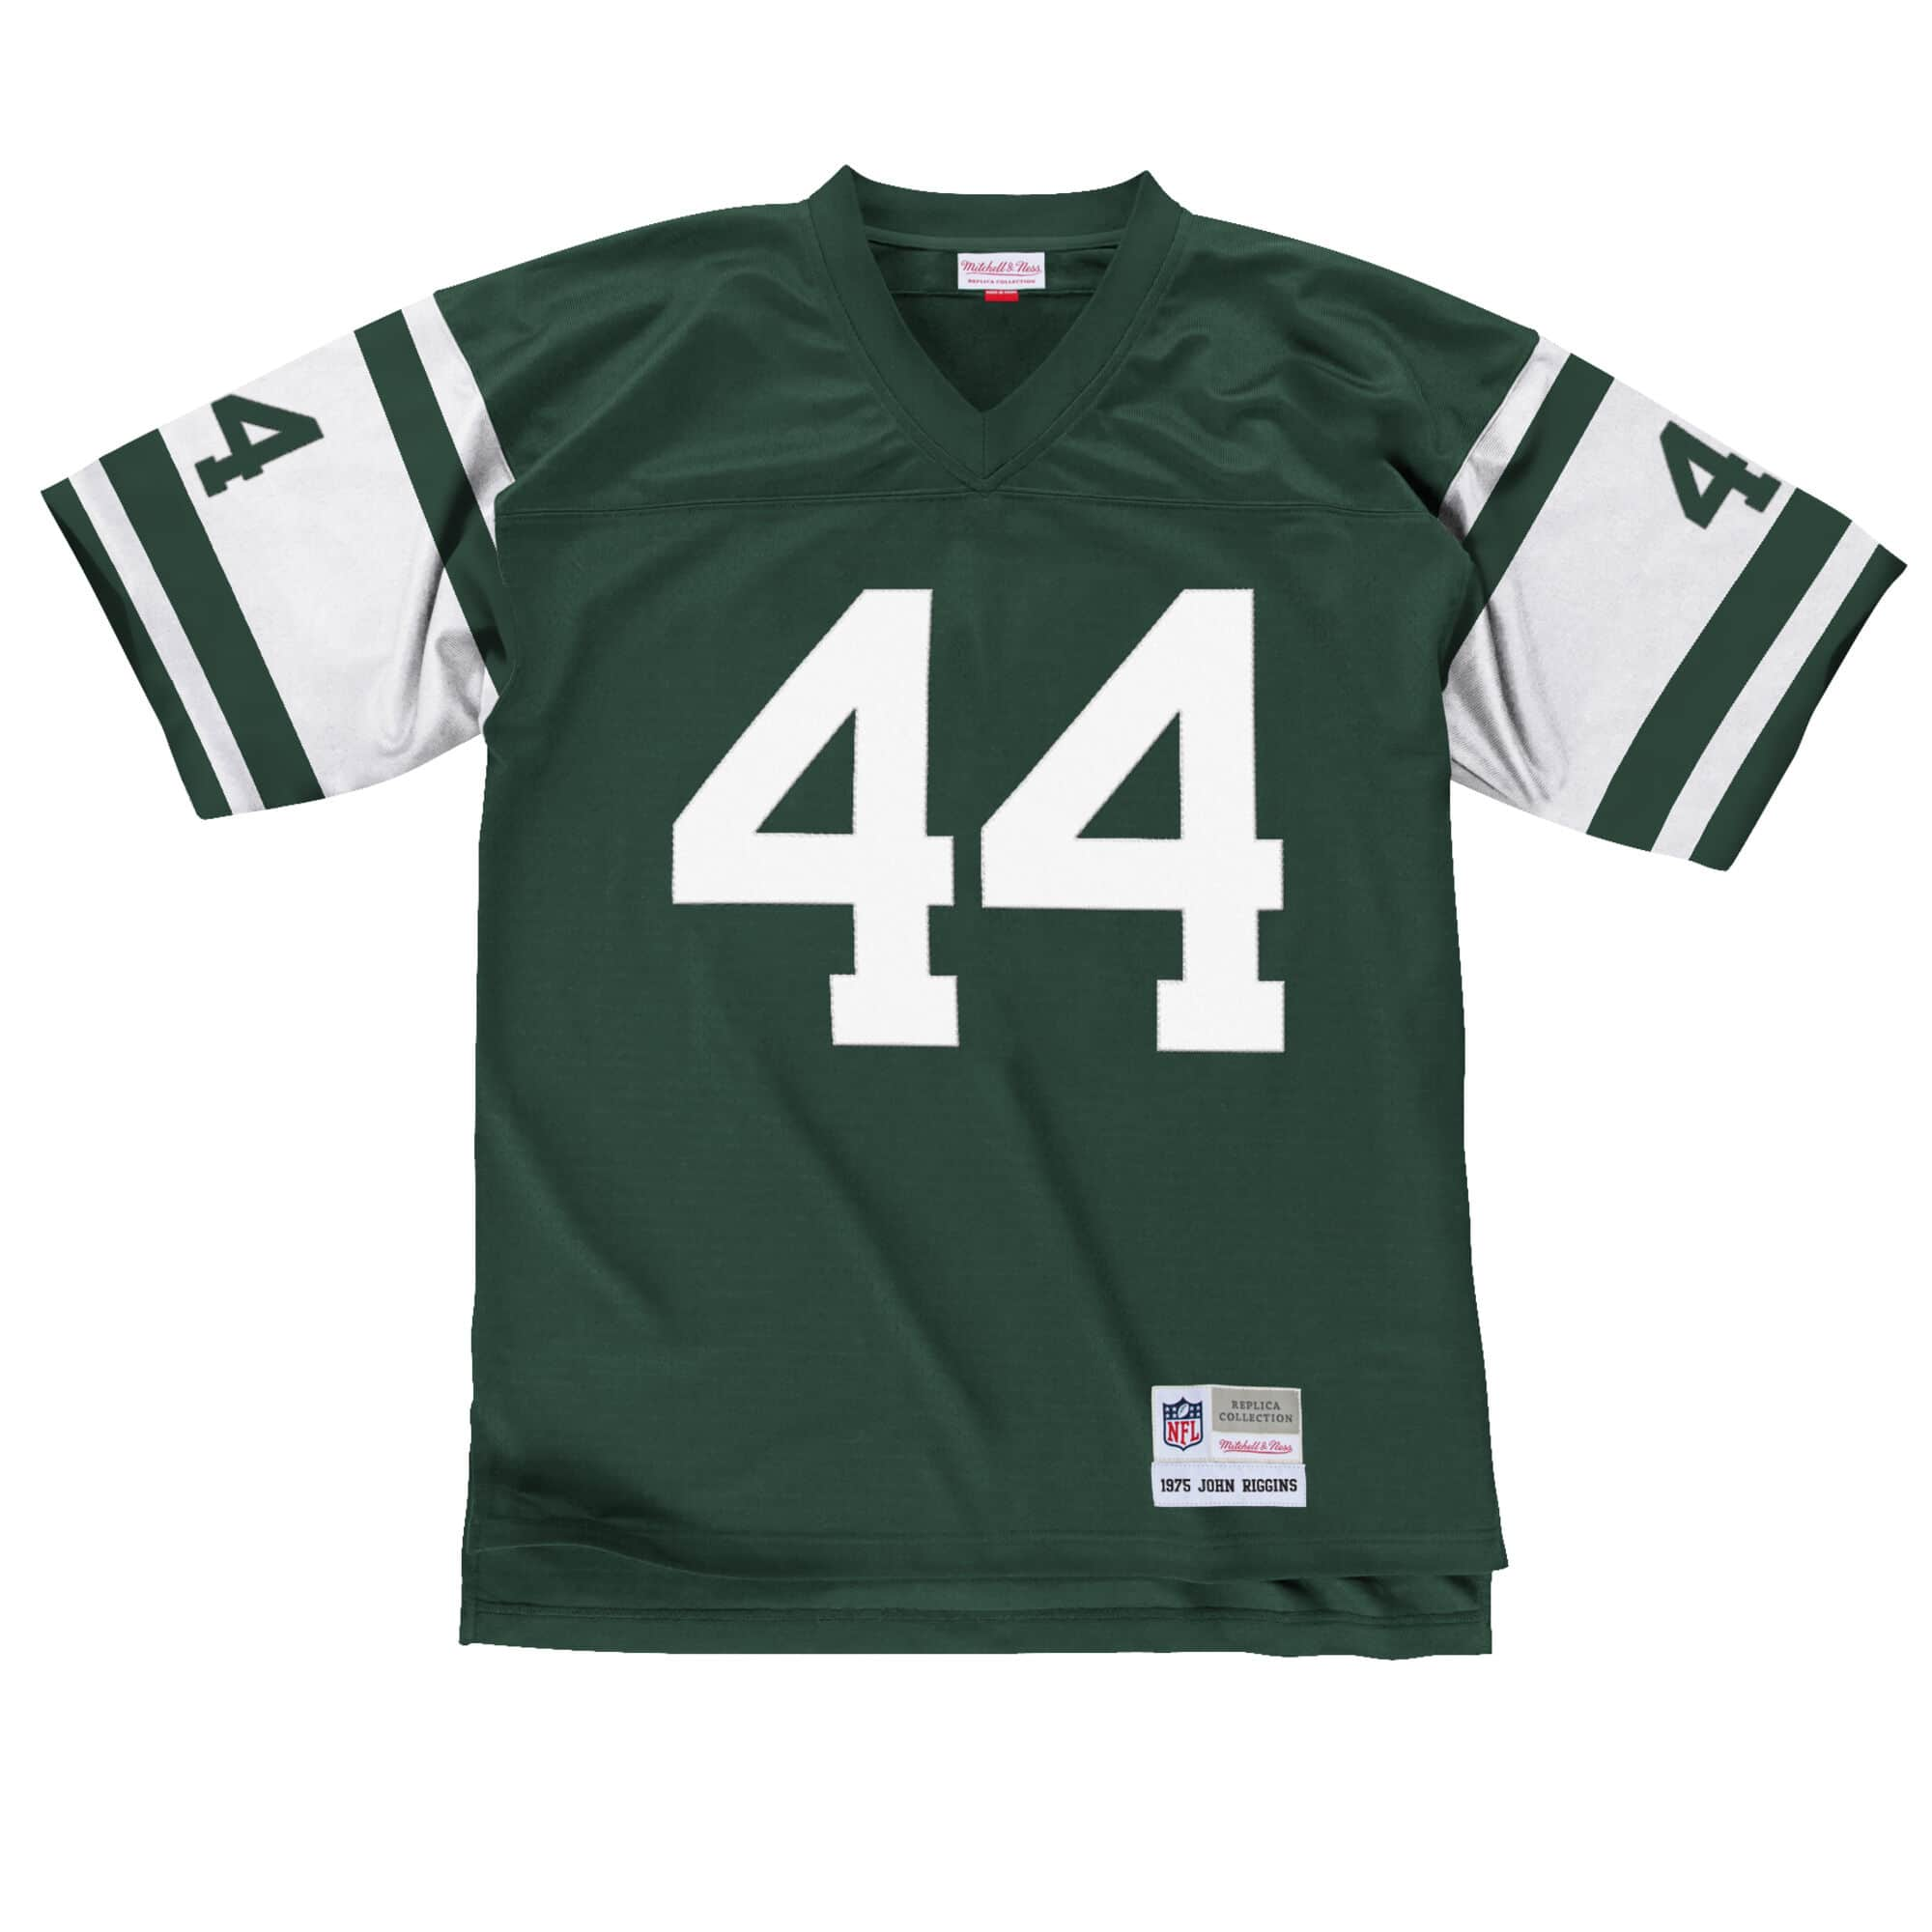 John Riggins 1975 Legacy Jersey New York Jets